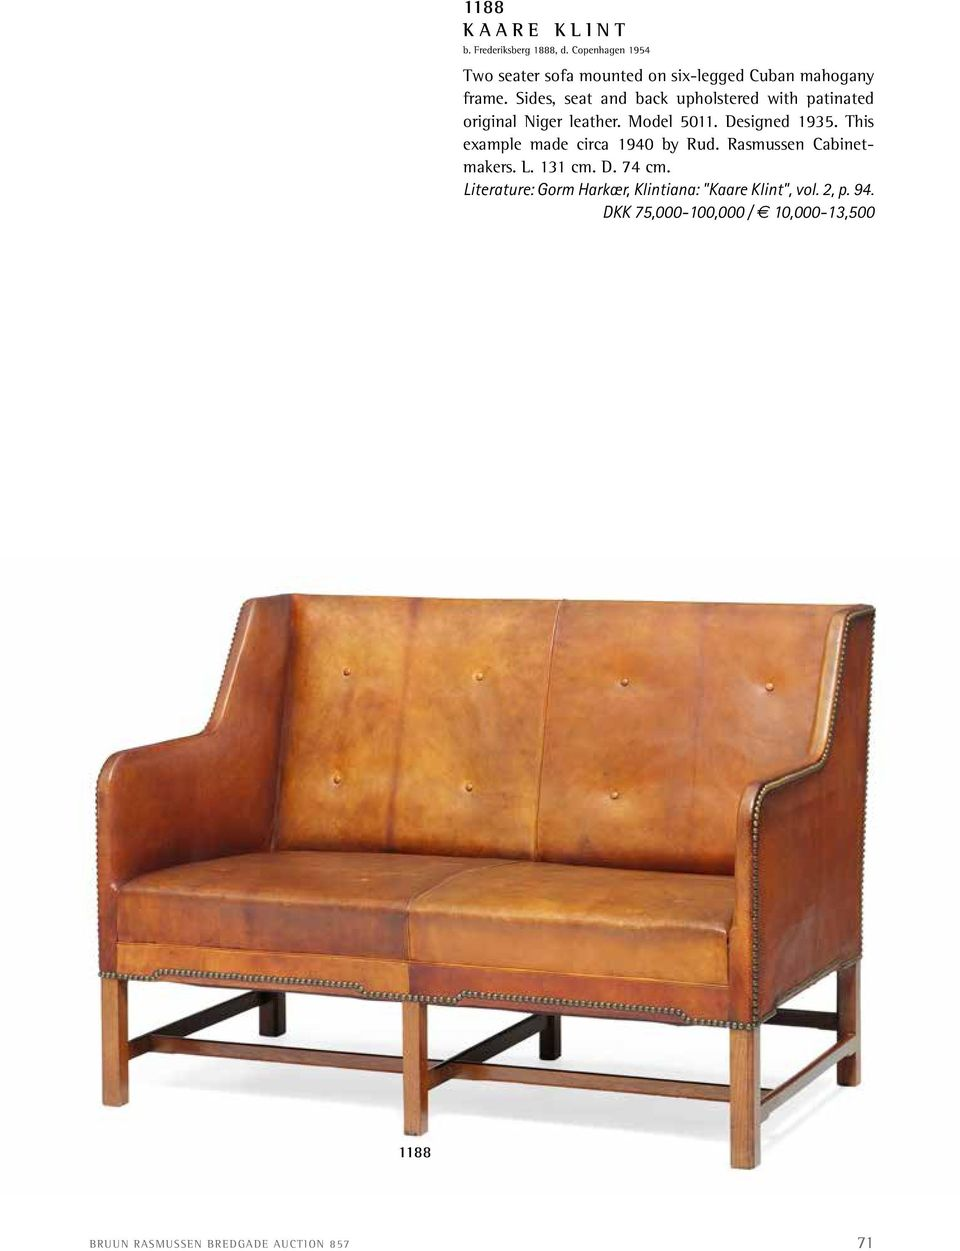 Sides, seat and back upholstered with patinated original Niger leather. Model 5011. Designed 1935.